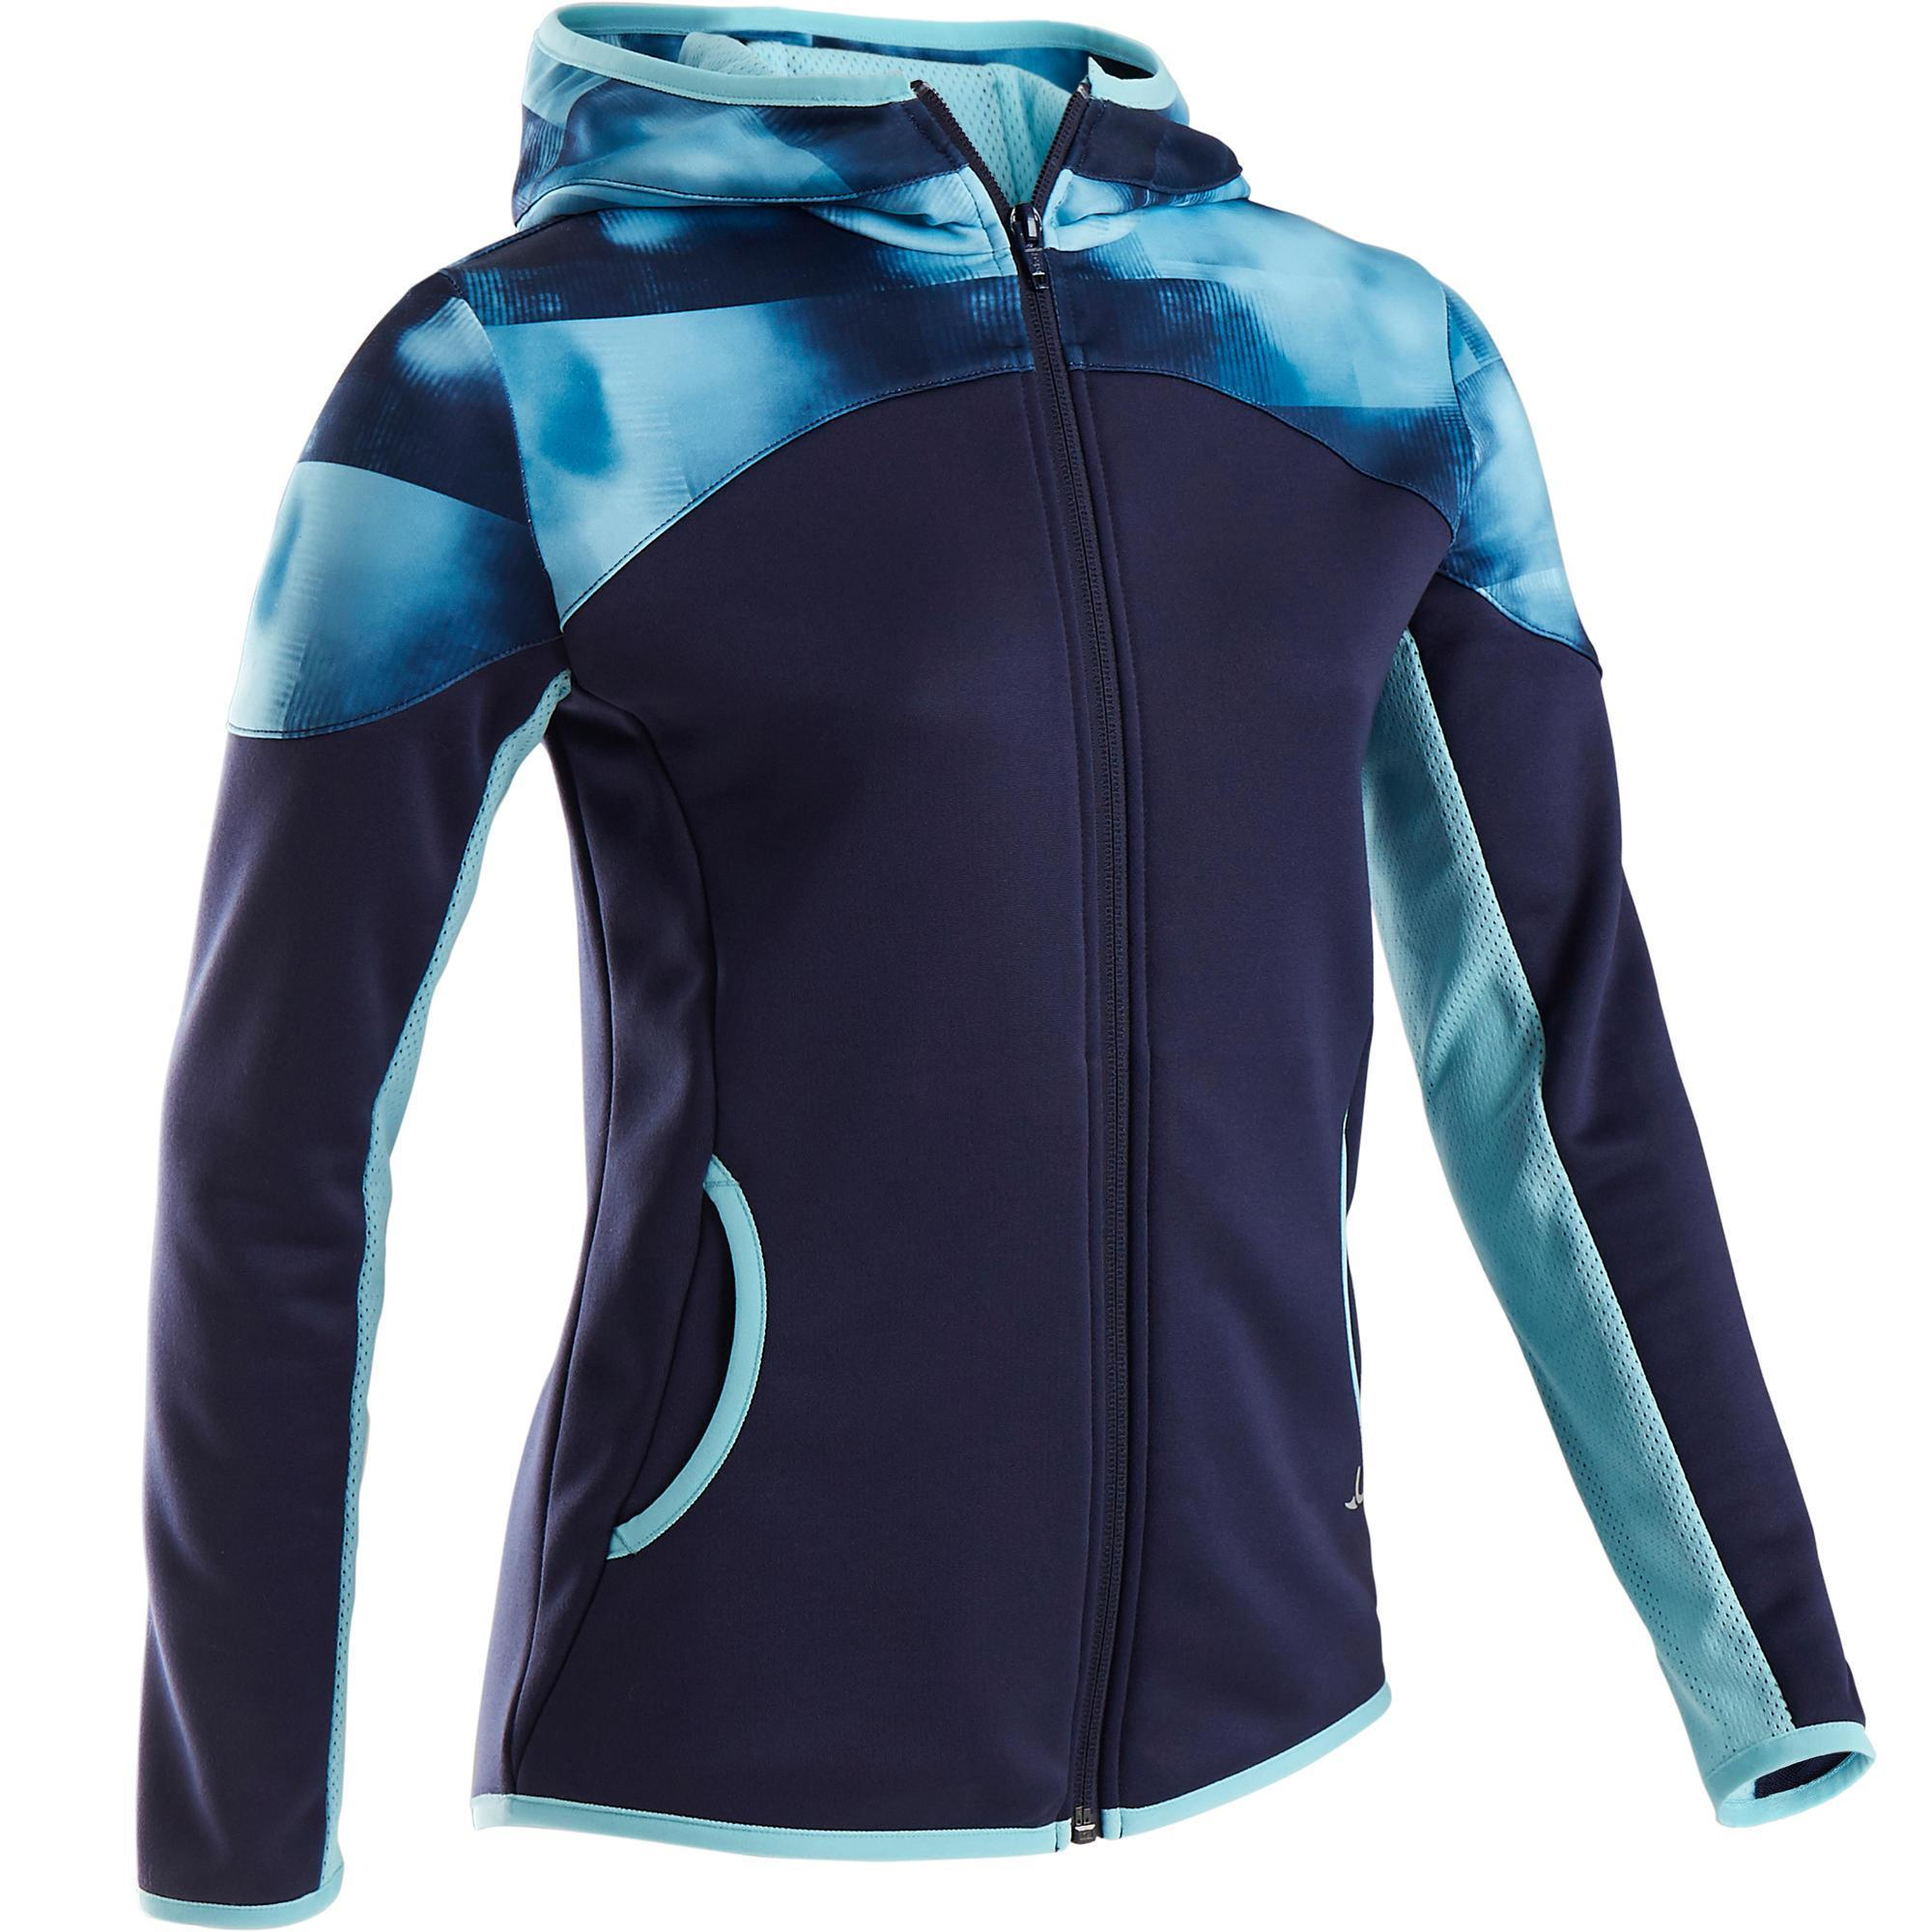 Trainingsjacke S500 Gym warm atmungsaktiv Kinder blau mit Print